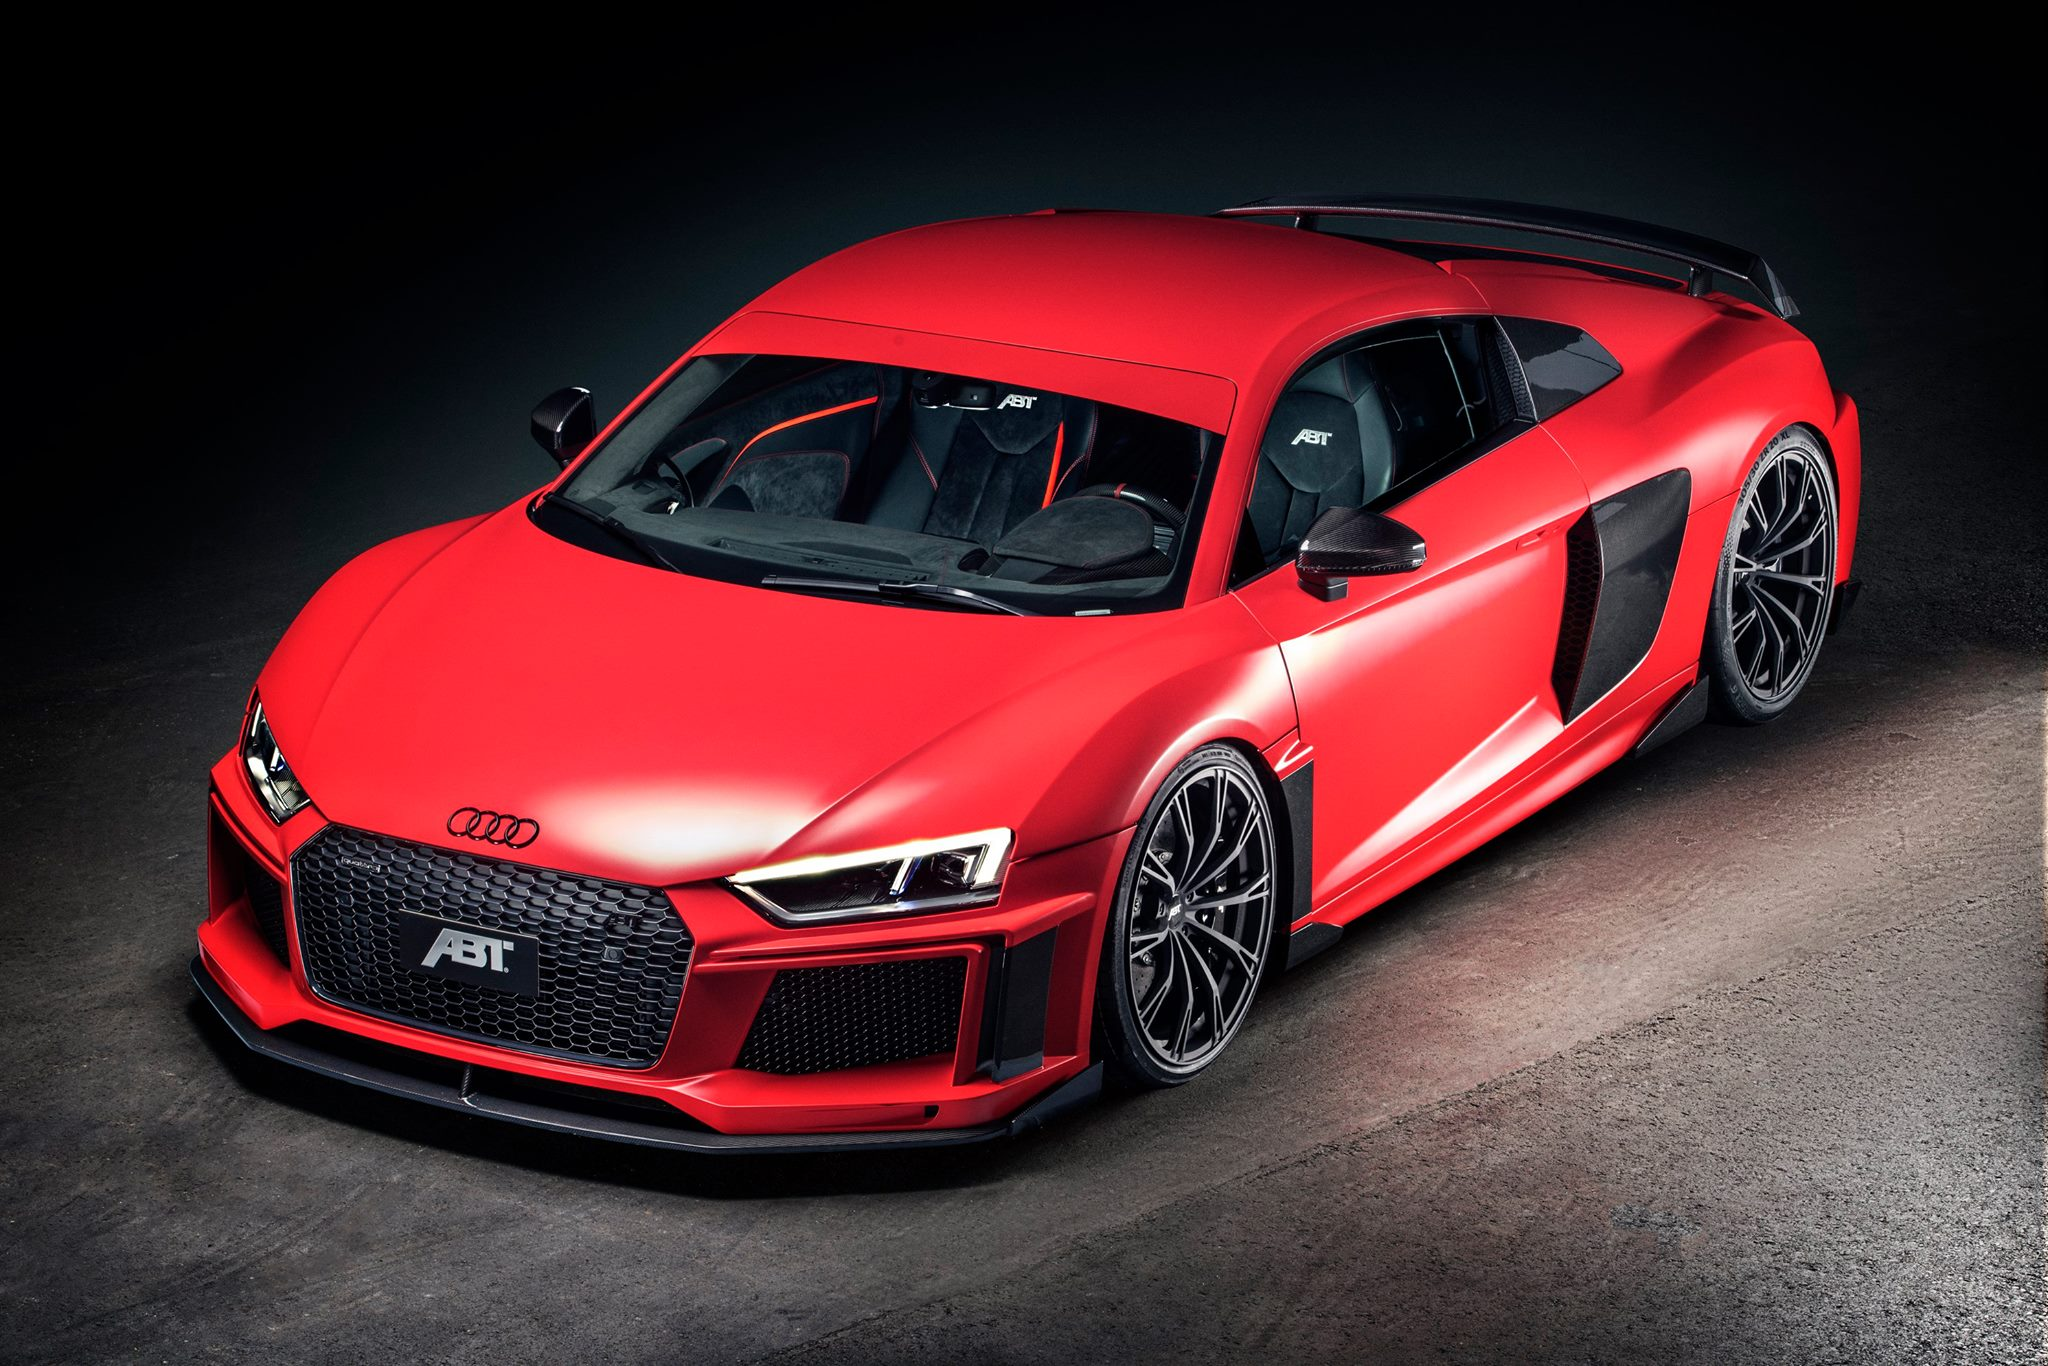 2017 audi r8 is finally beautiful thanks to abt body kit autoevolution. Black Bedroom Furniture Sets. Home Design Ideas